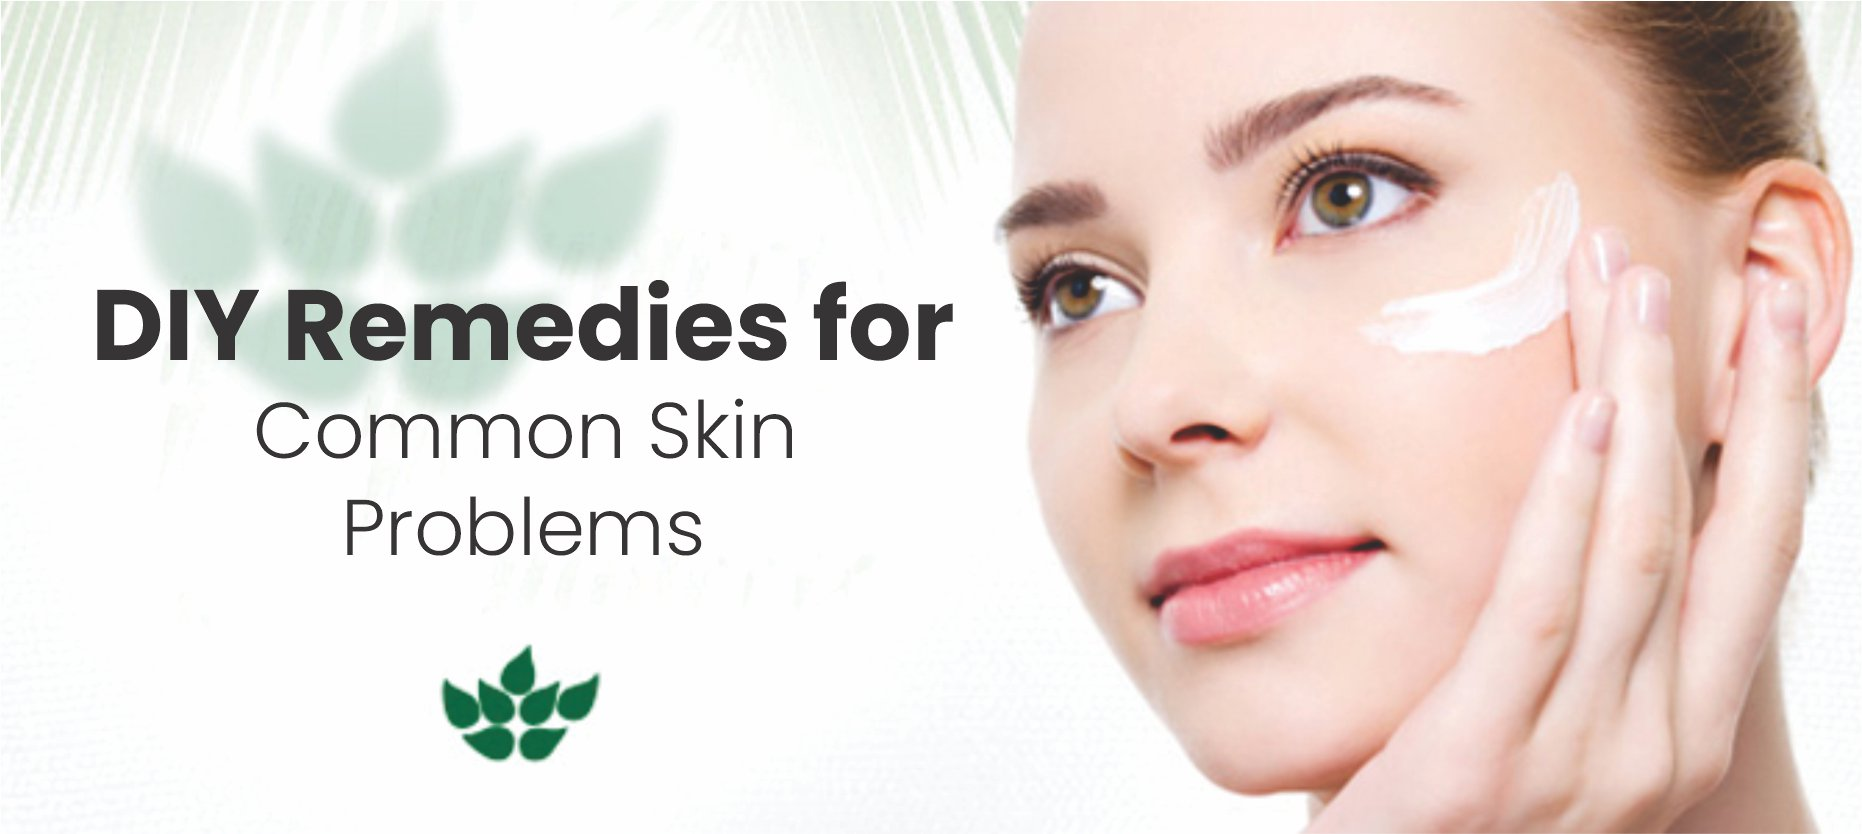 DIY Remedies for Common Skin Problems